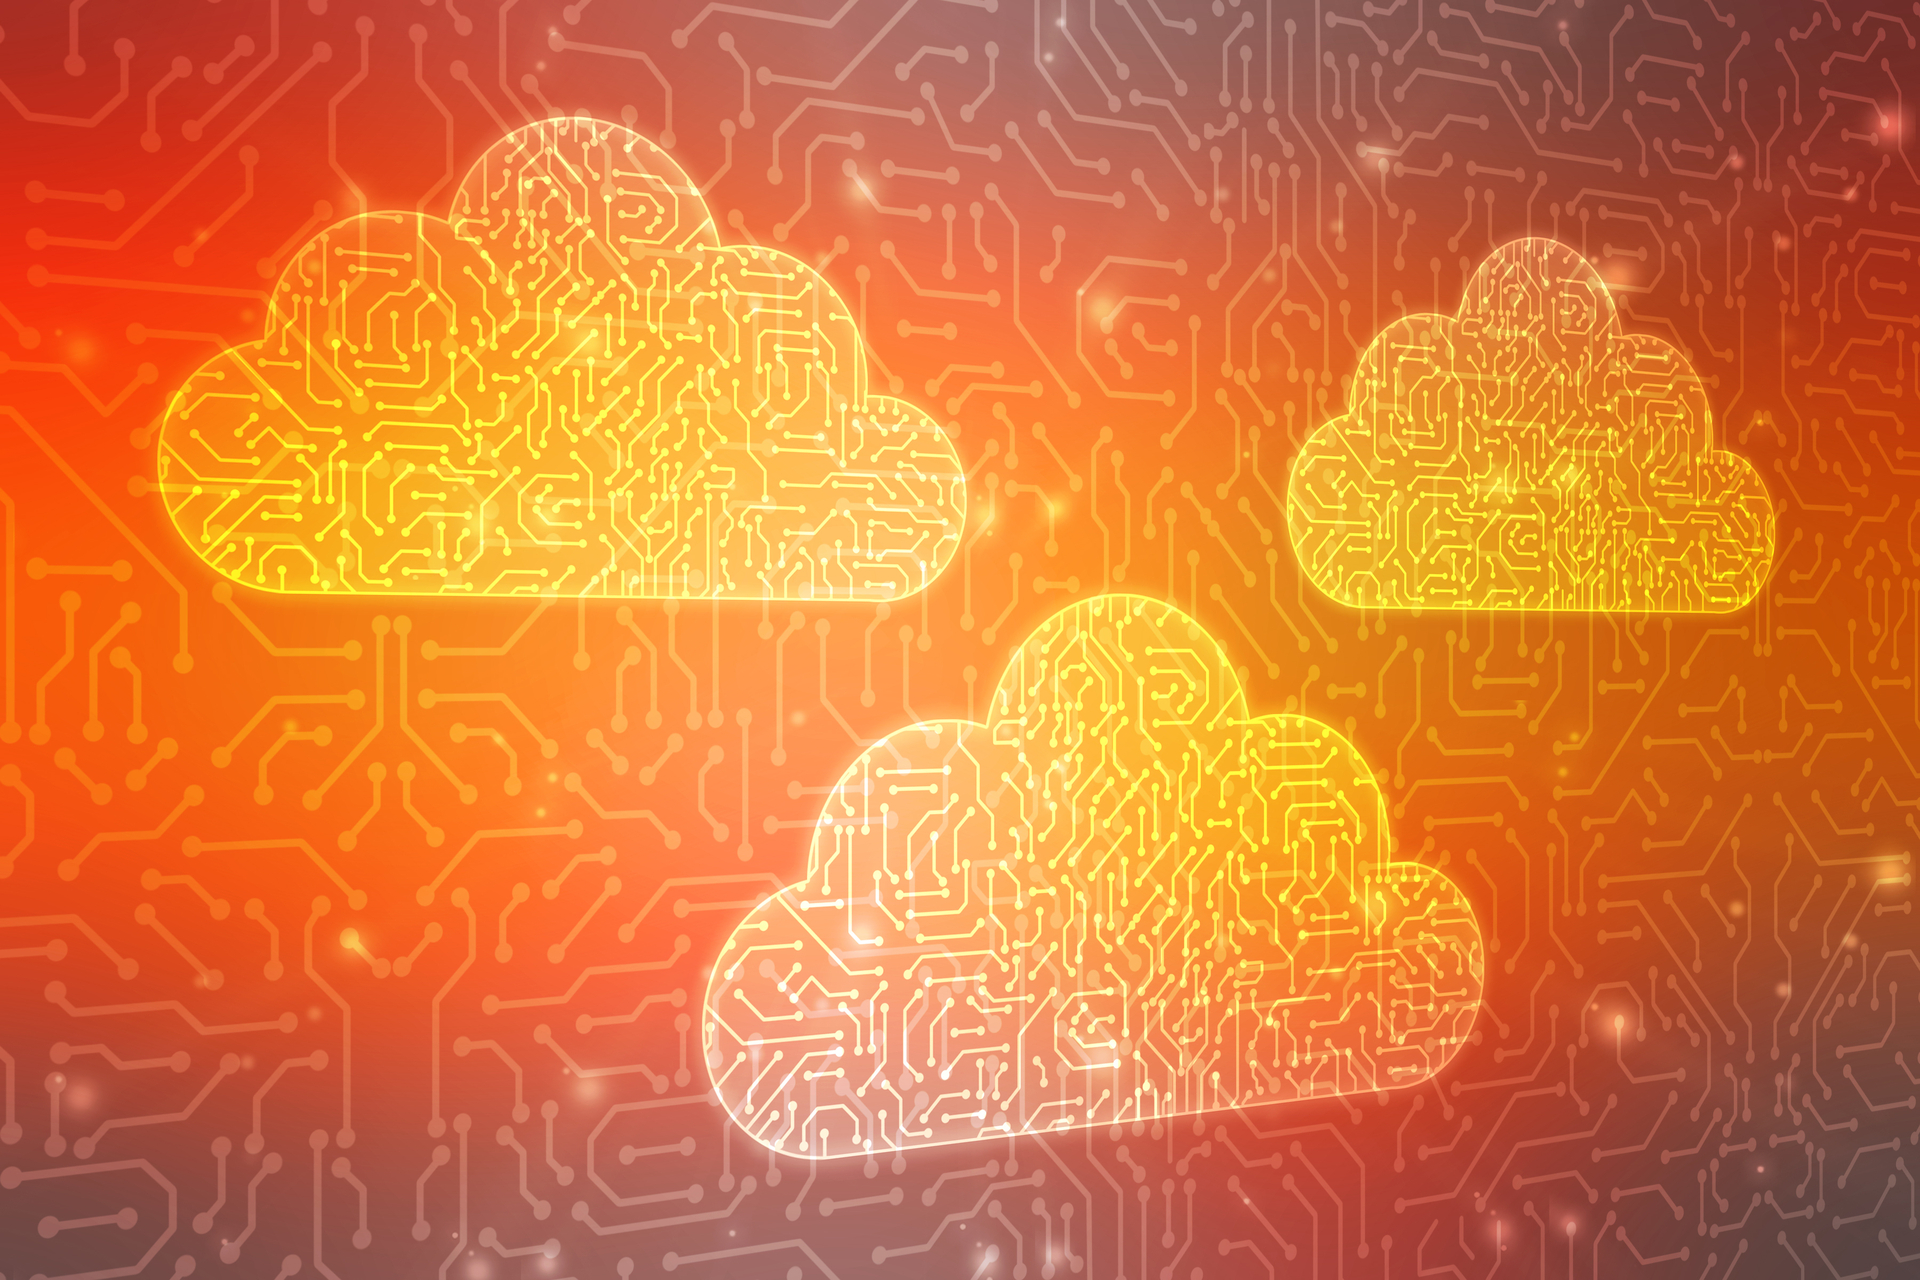 Who is responsible for cloud security? It's a bit foggy, finds McAfee